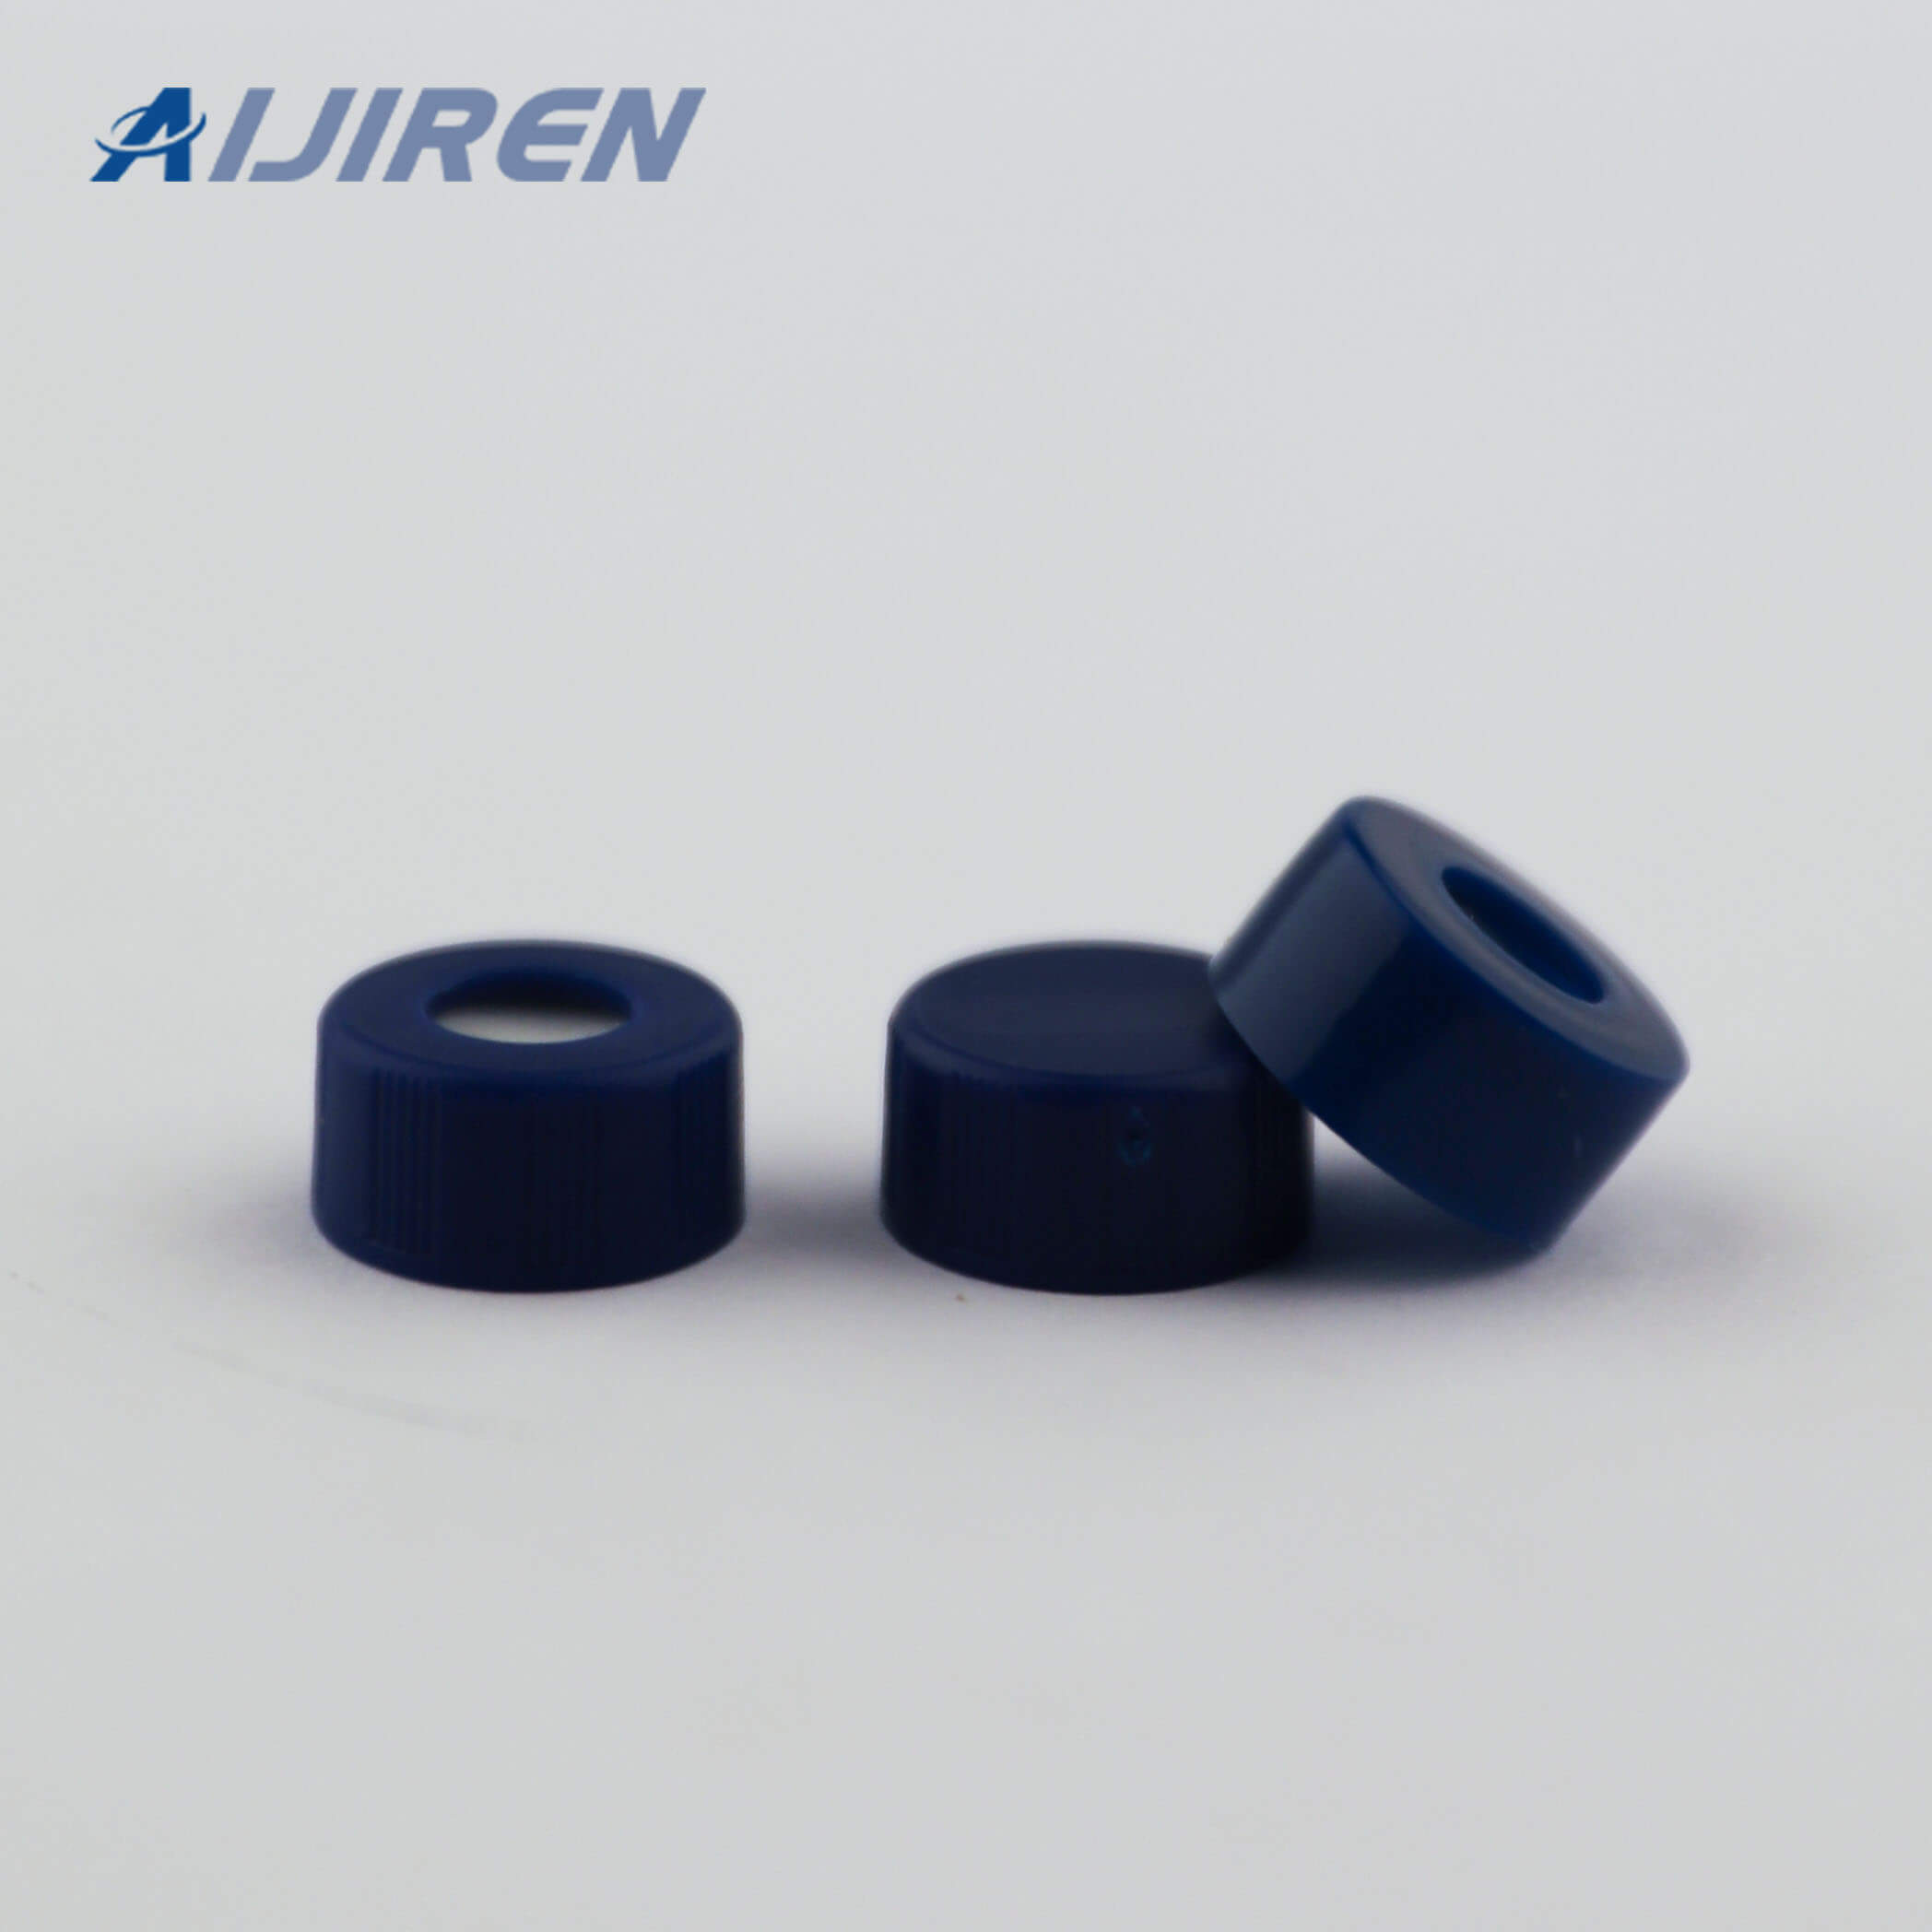 9mm PP Screw Cap with 6mm Center Hole for THERMO FISHER